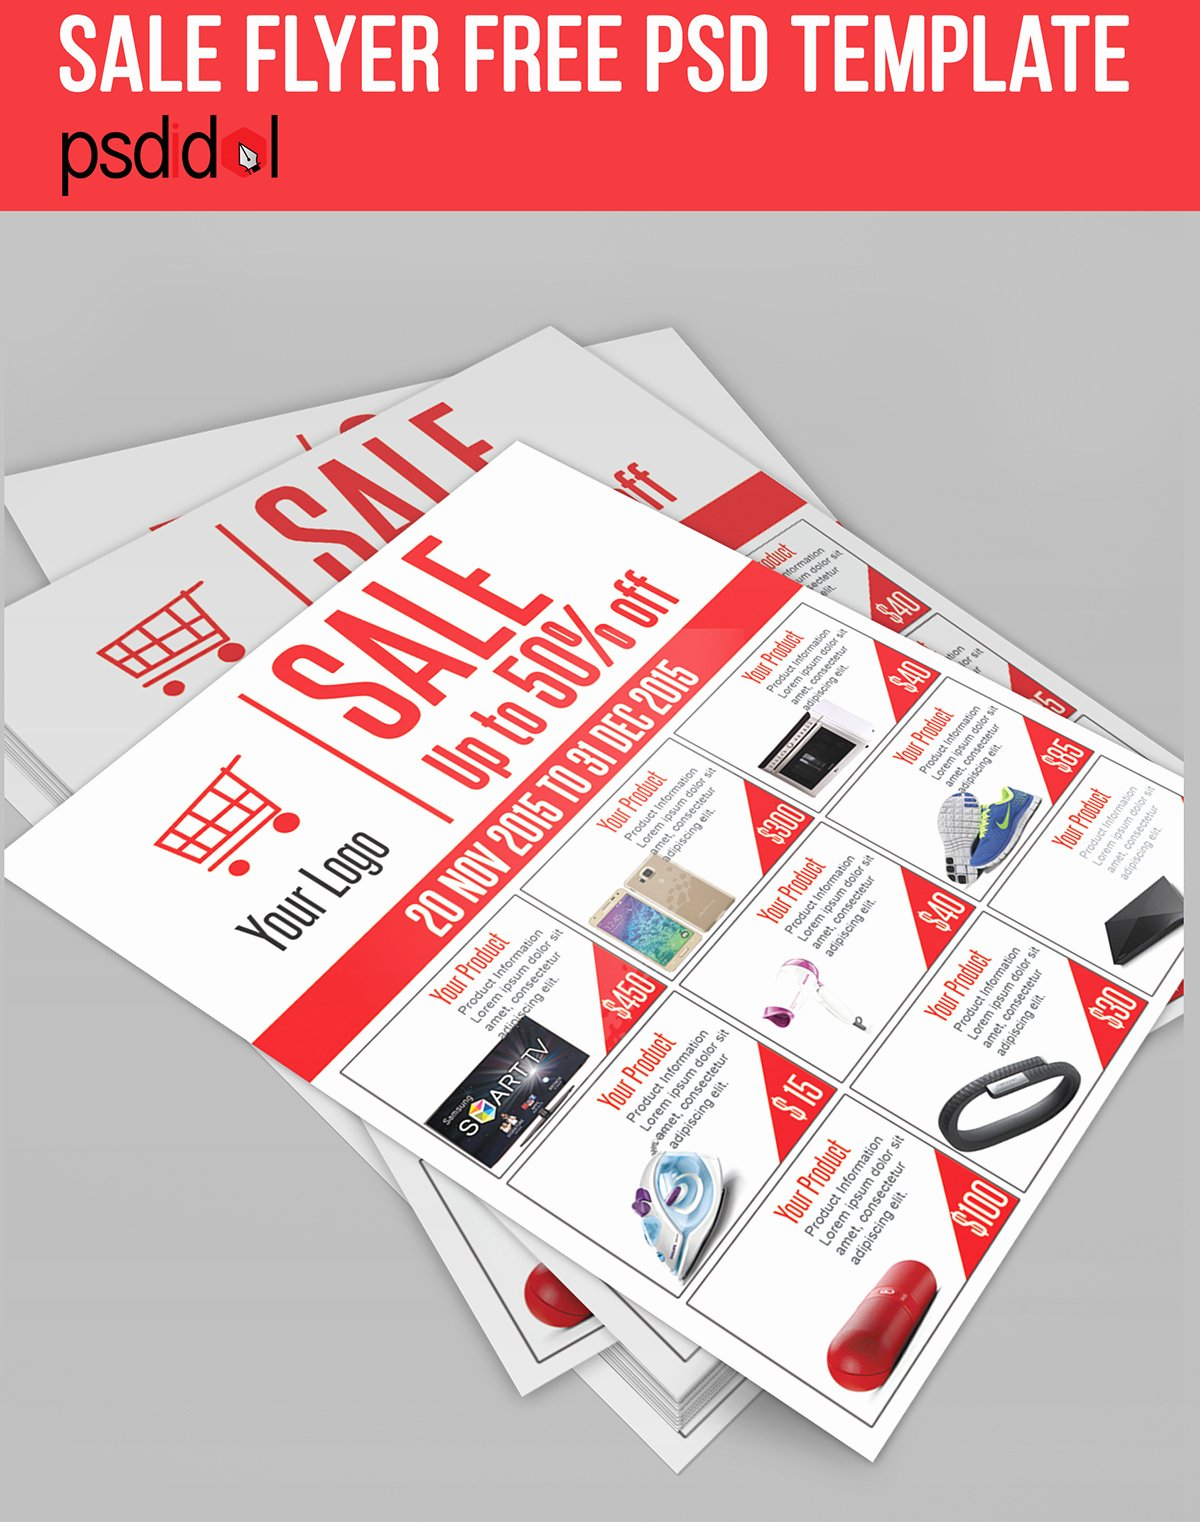 Product Catalogue Template Free Inspirational Sale Flyer Free Psd Template Download On Behance